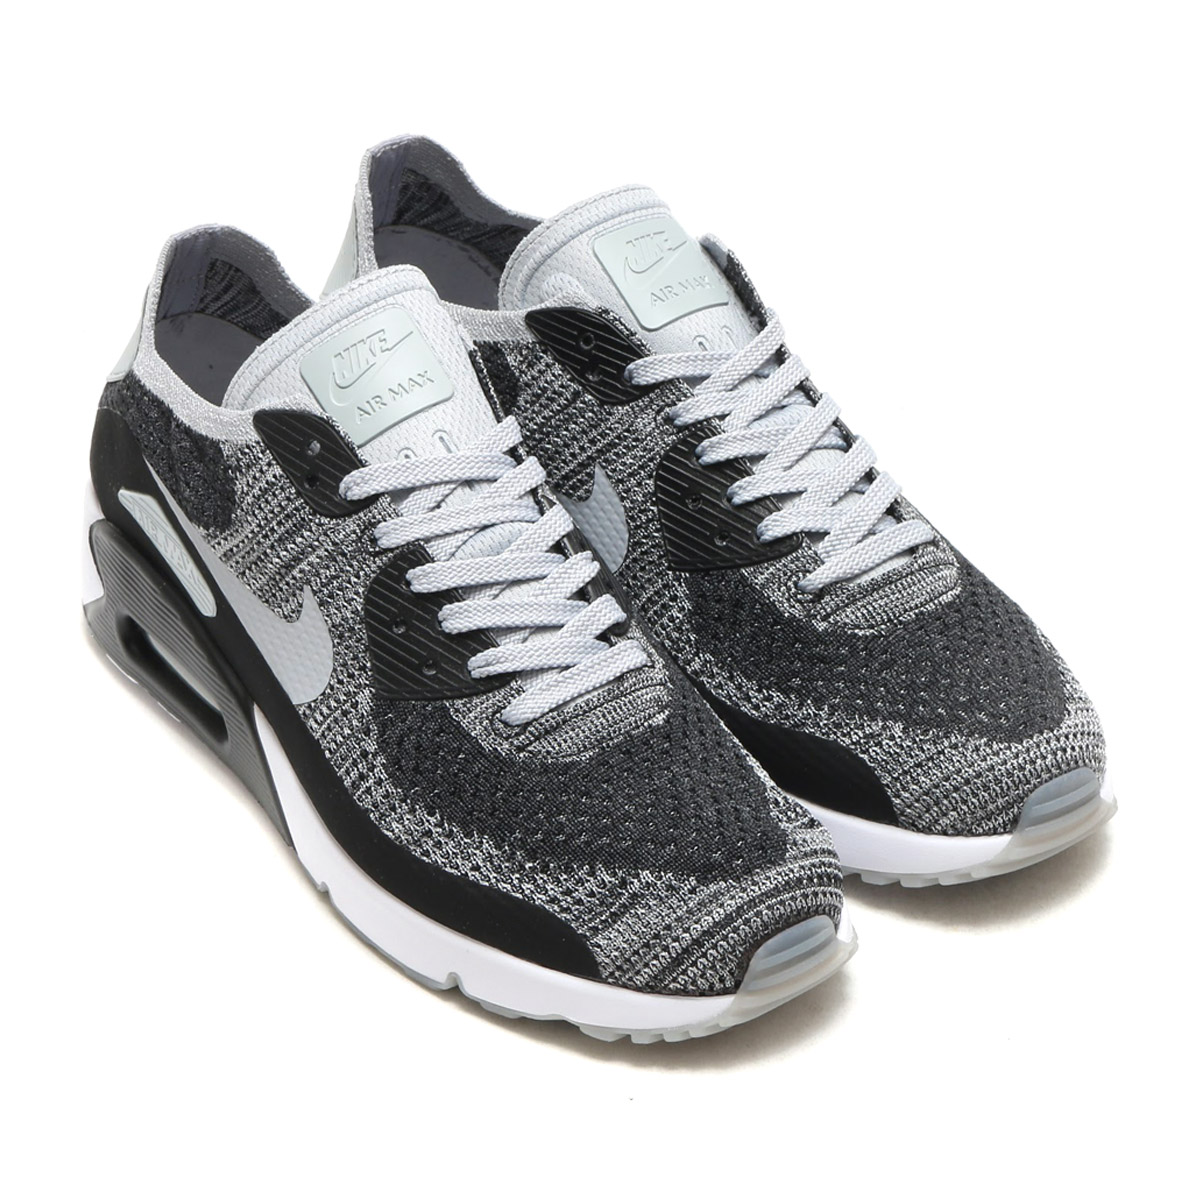 It renovates a design and expresses the hommage to Air Max icon. Is  distinguished for the form mid sole which adopt lightness and Flyknit upper  superior in ... f54e846a74